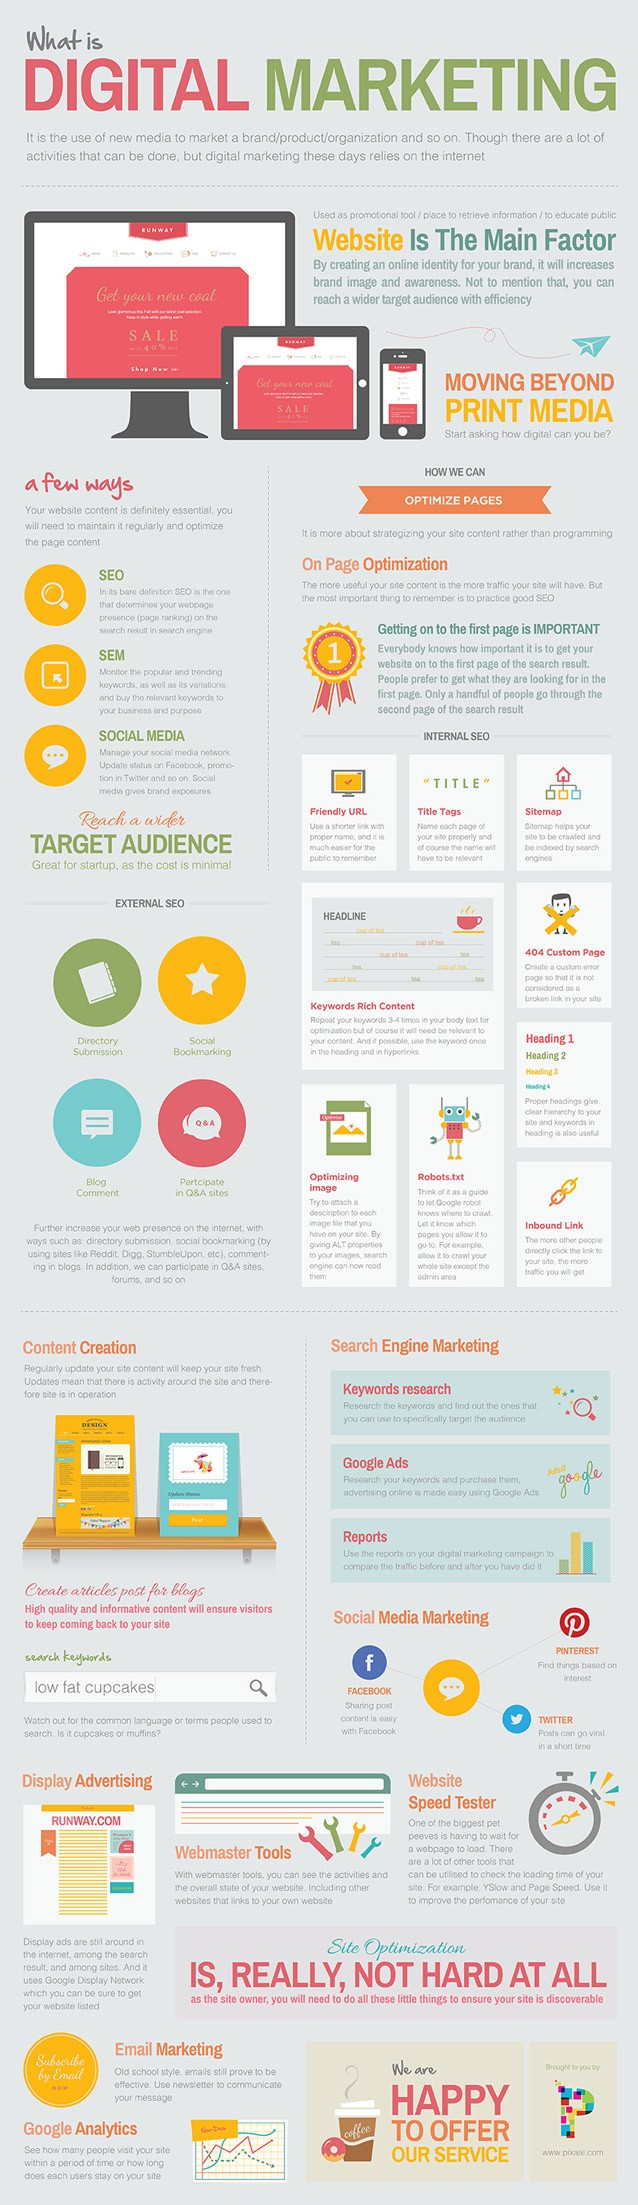 Wat is digital marketing? - Infographic